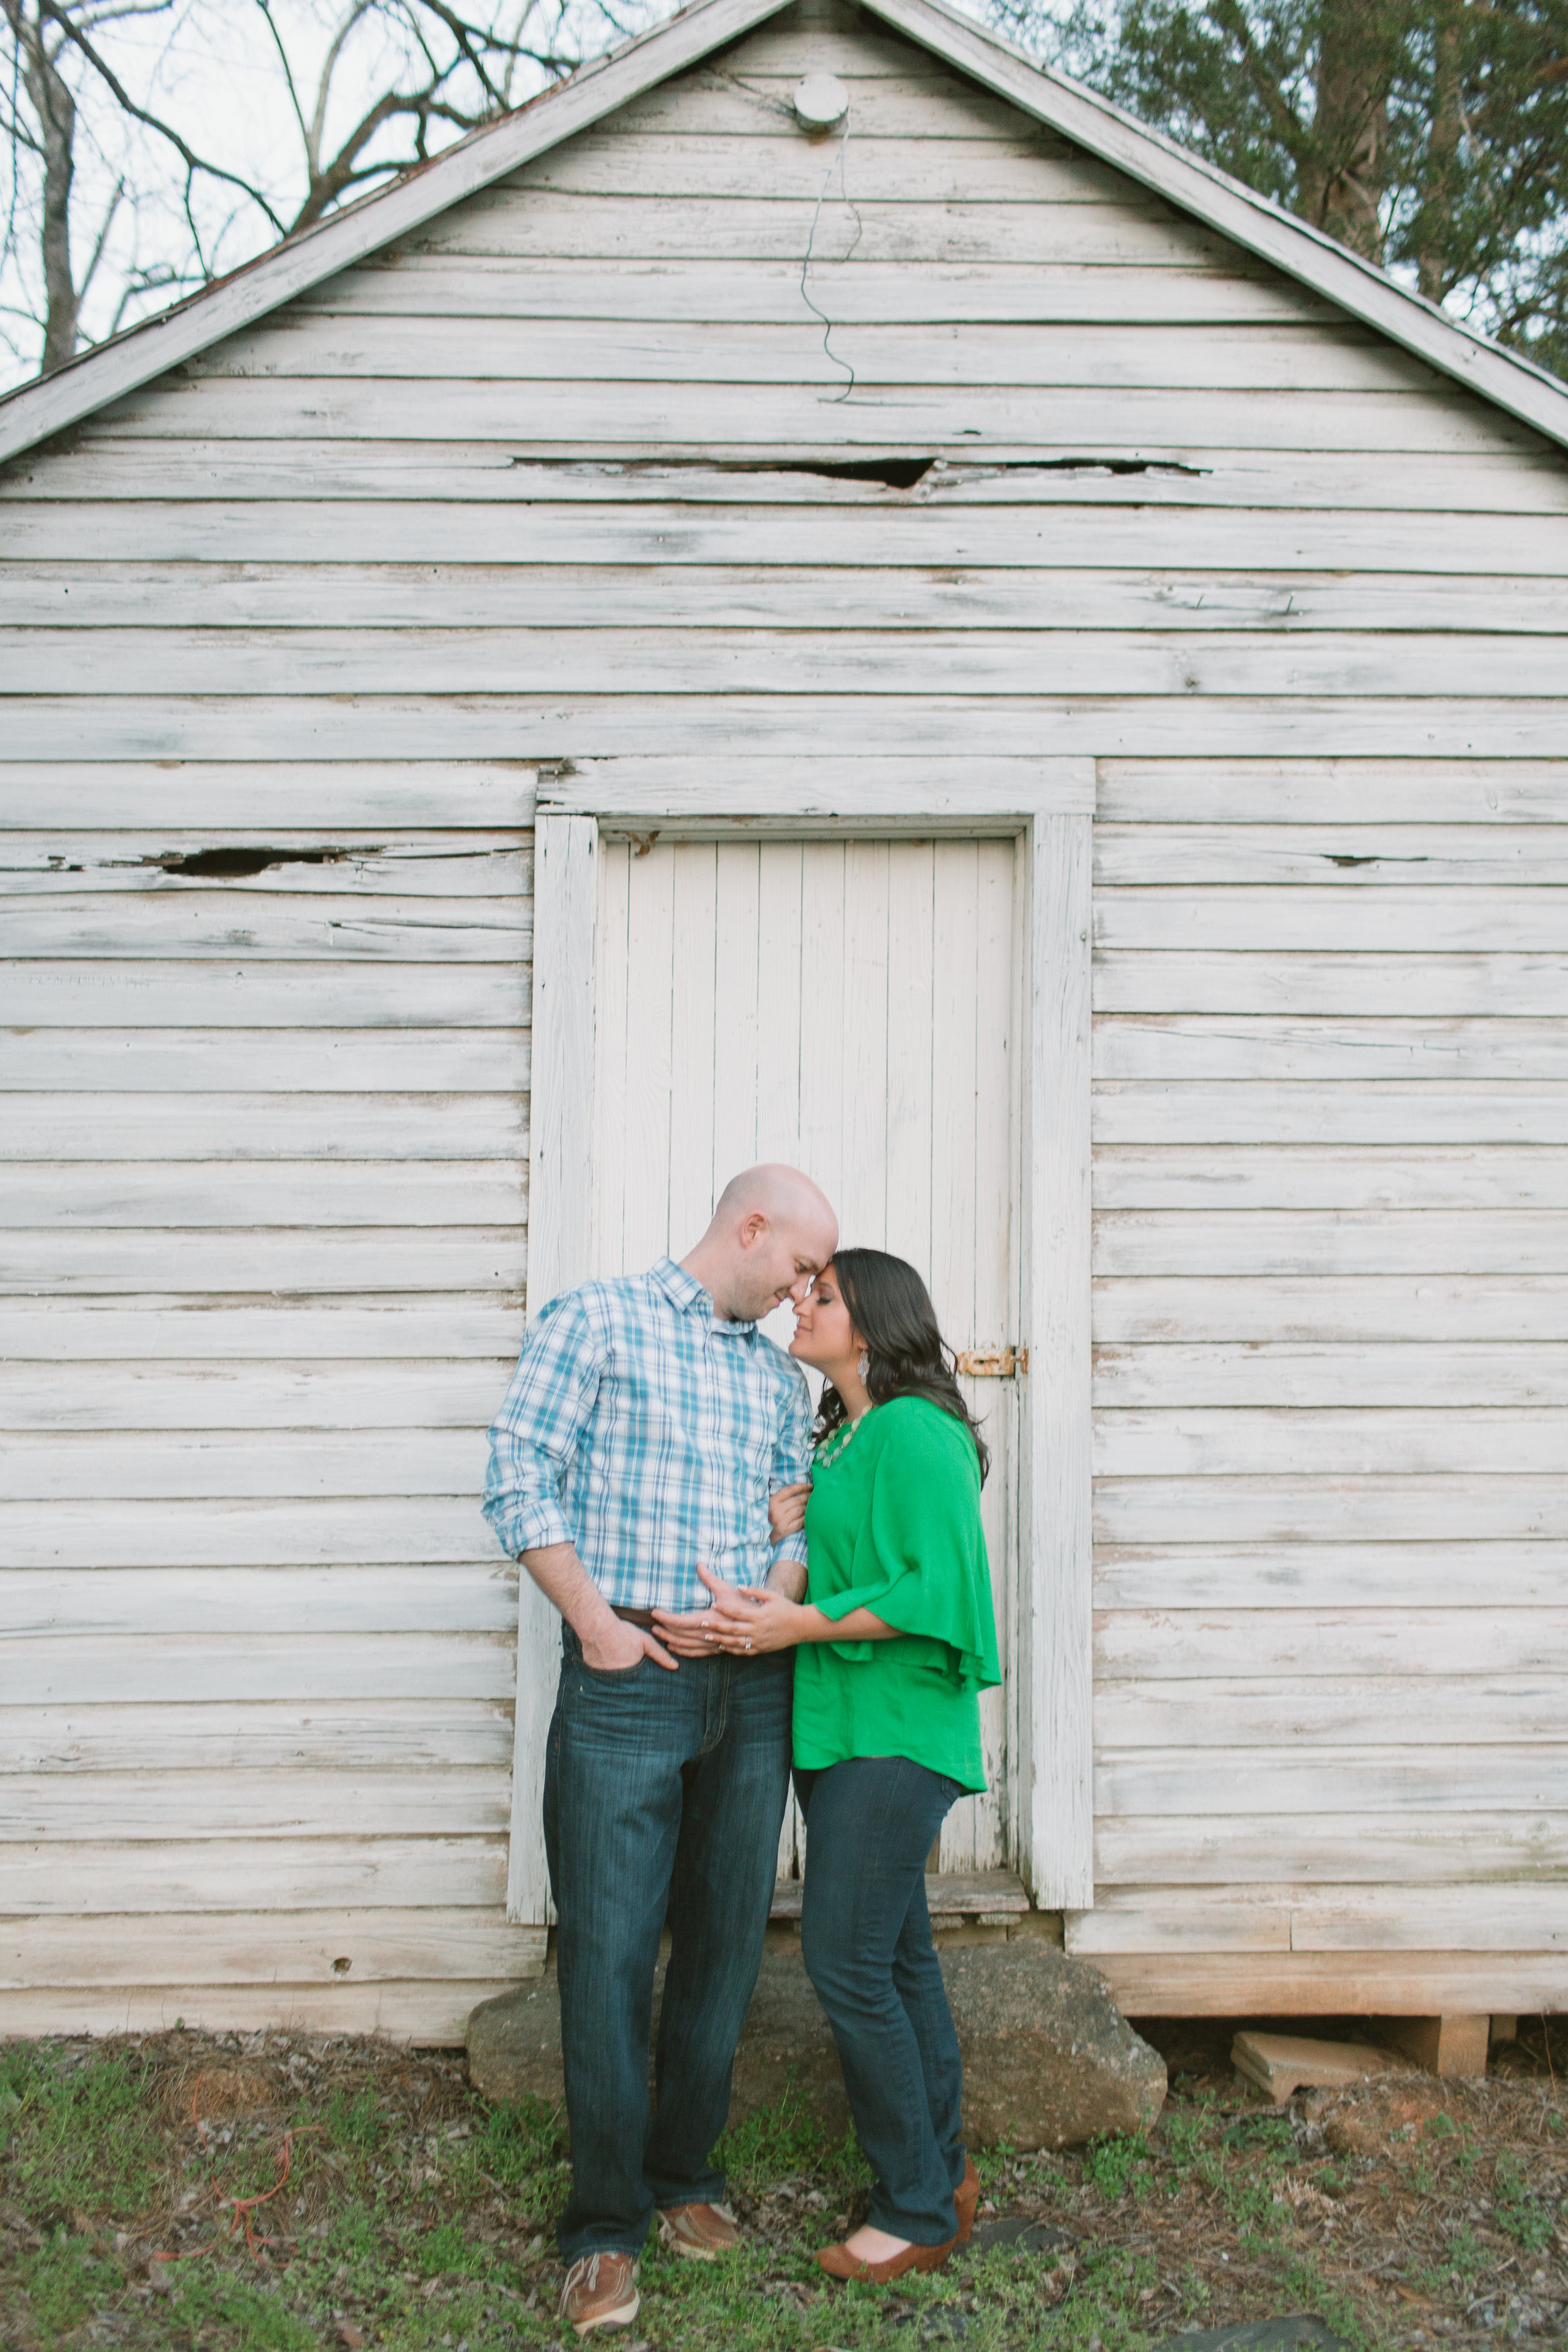 View More: http://laurenrosenauphoto.pass.us/lindsayandben